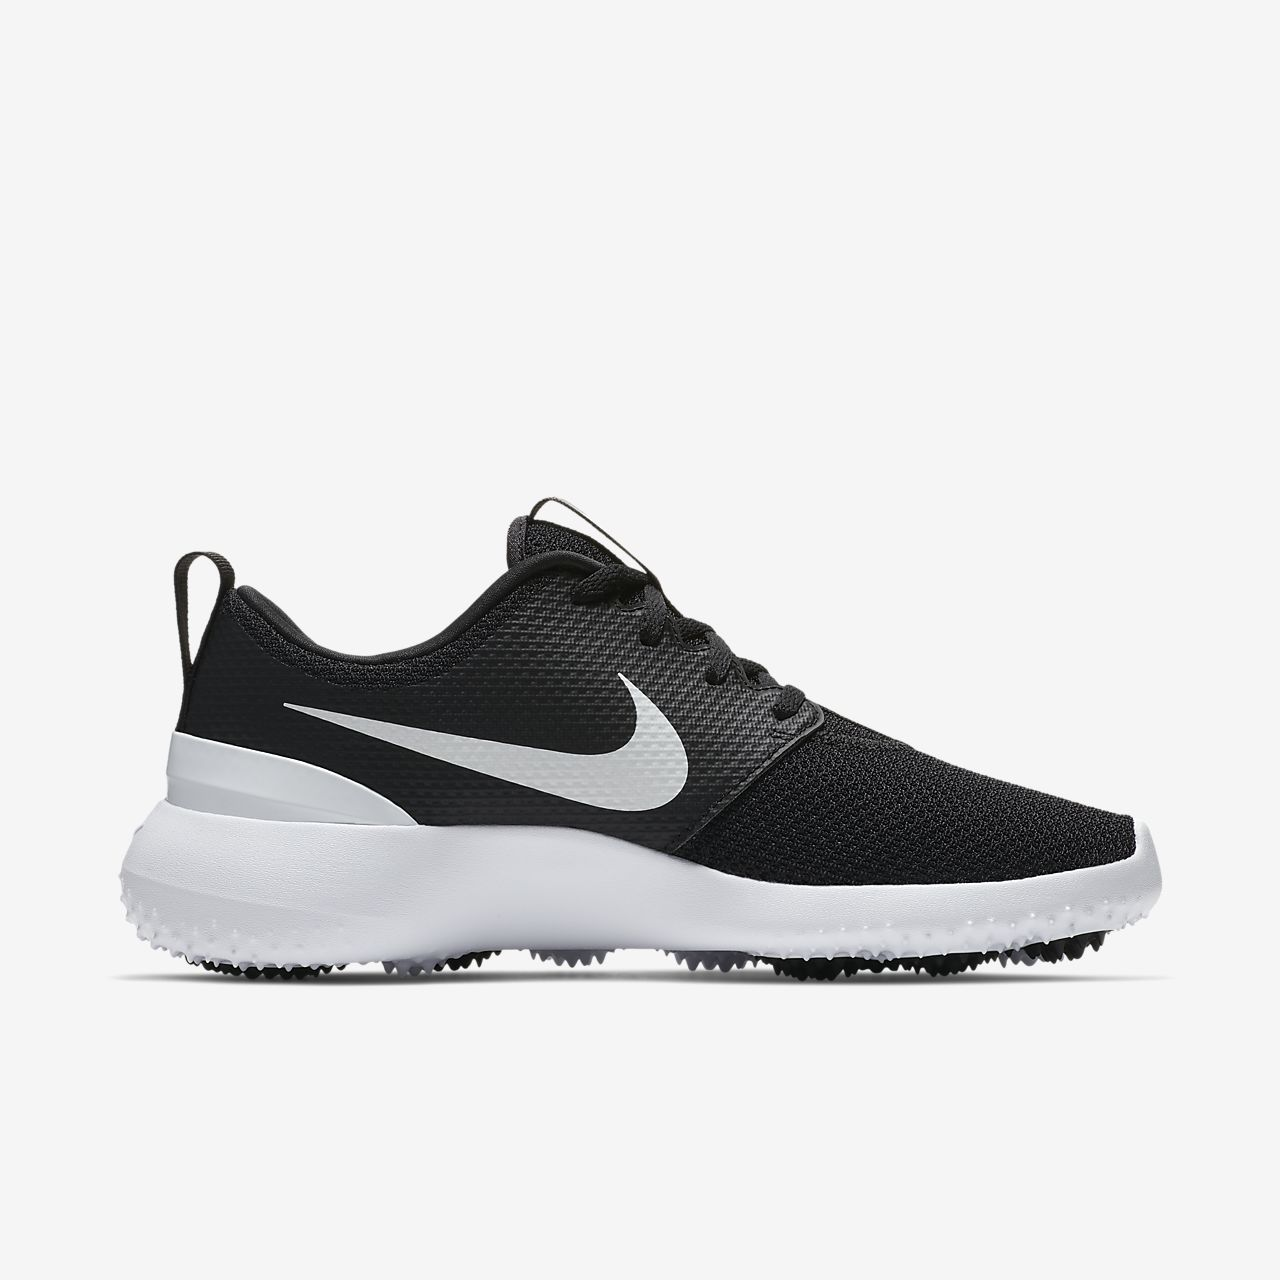 official photos 53879 9c656 Nike Roshe G Women's Golf Shoe